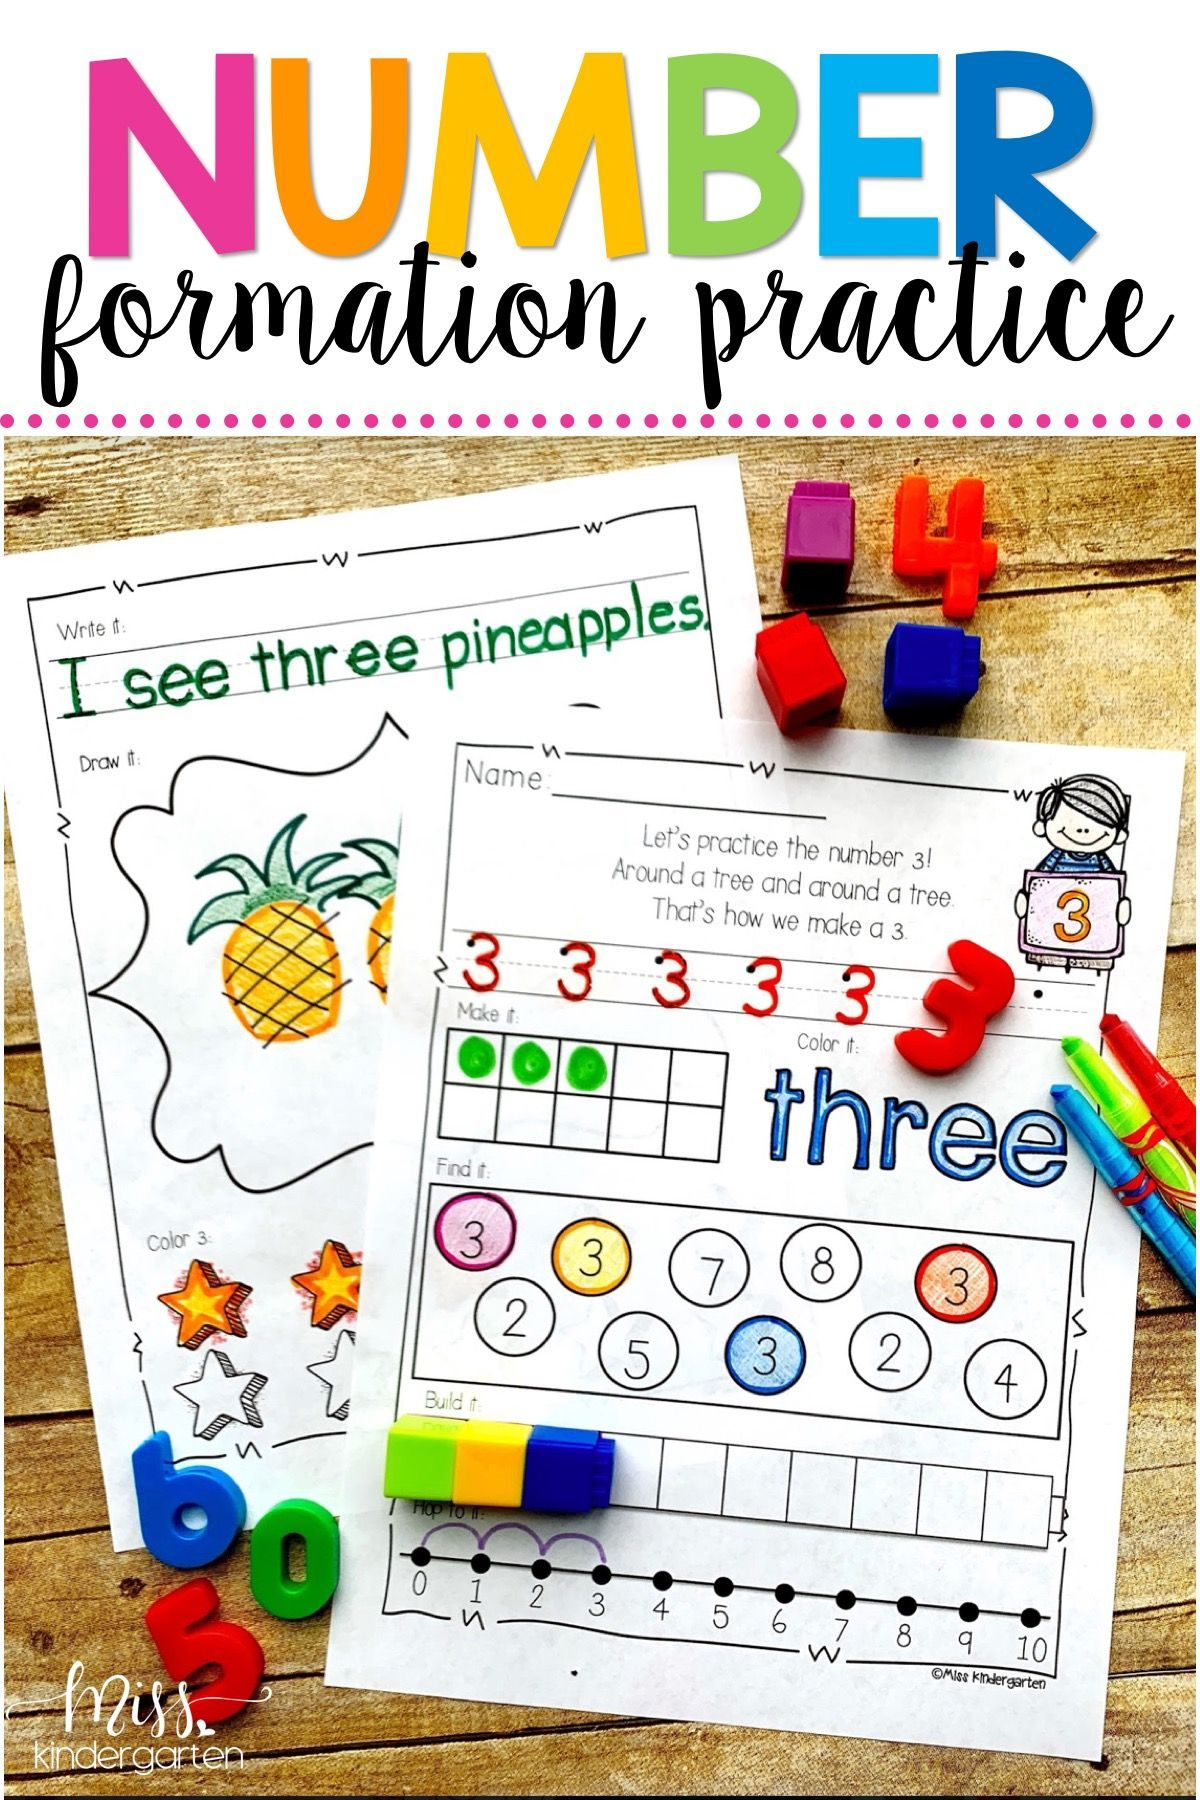 These Worksheets Can Be Used As A Fun Way To Incorporate 1